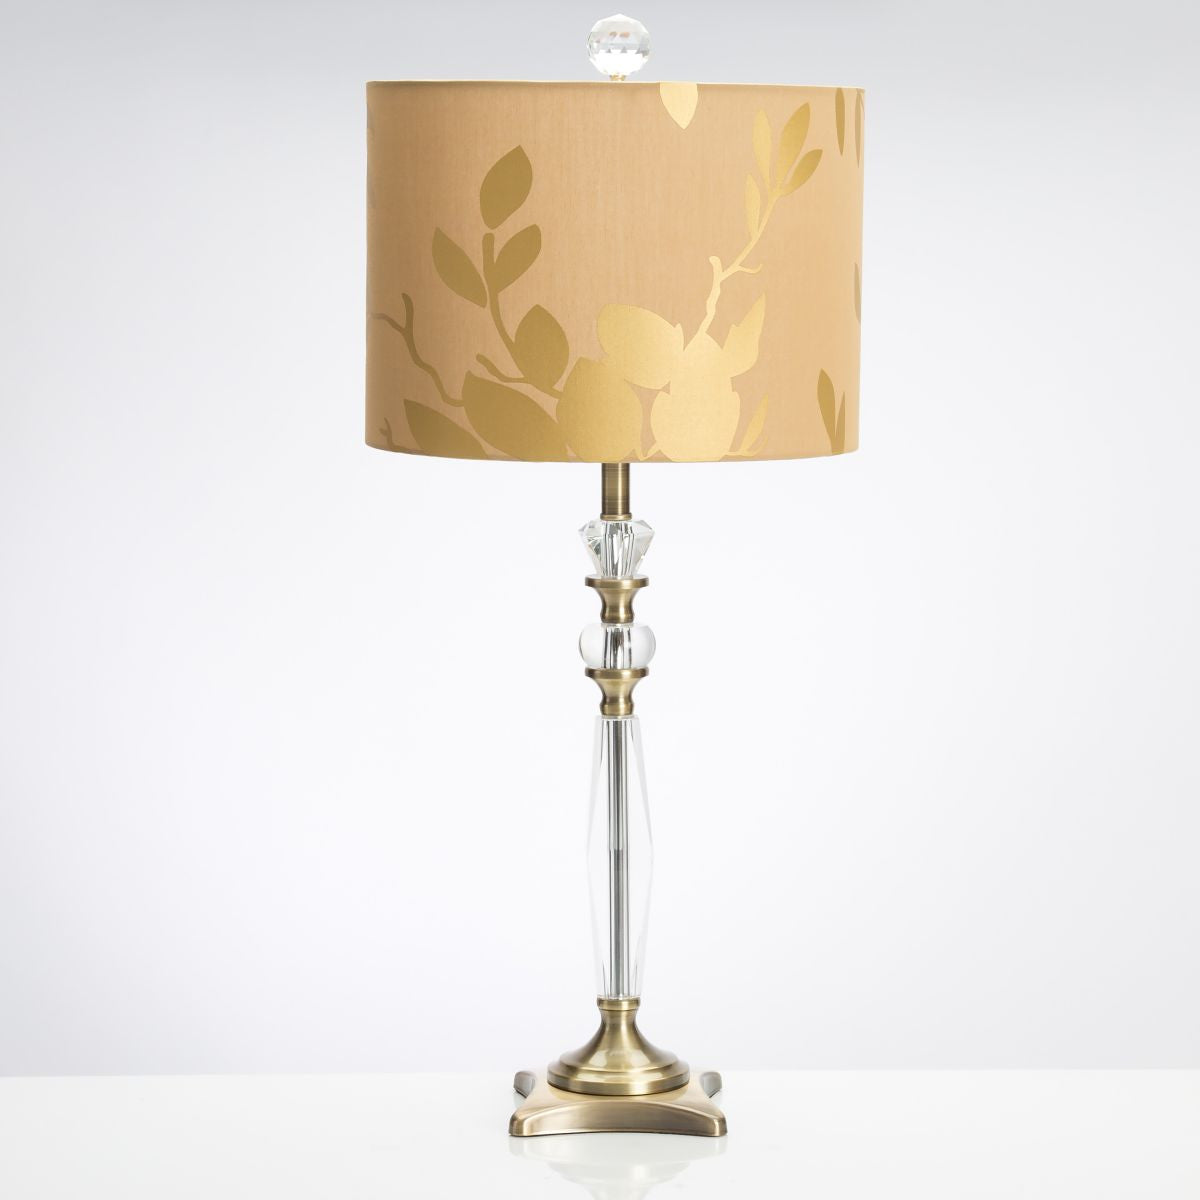 Golden leaf table lamp design by couture lamps burke decor golden leaf table lamp design by couture lamps aloadofball